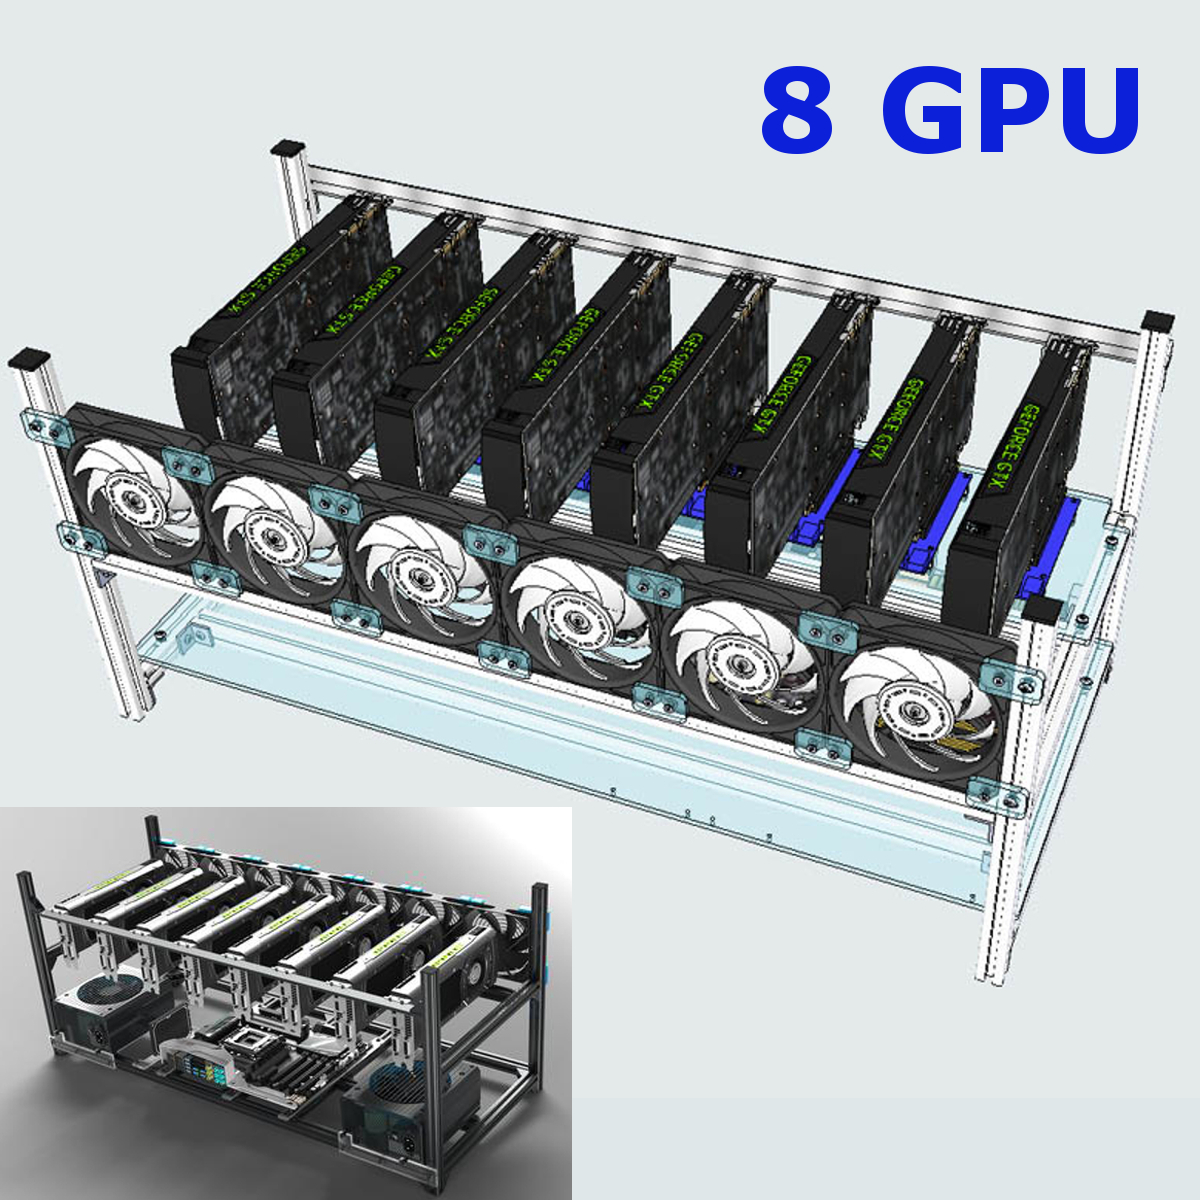 Aluminum Crypto Coin Open Air Mining Frame Rig Case Up To 8 GPU ETH BTC Ethereum